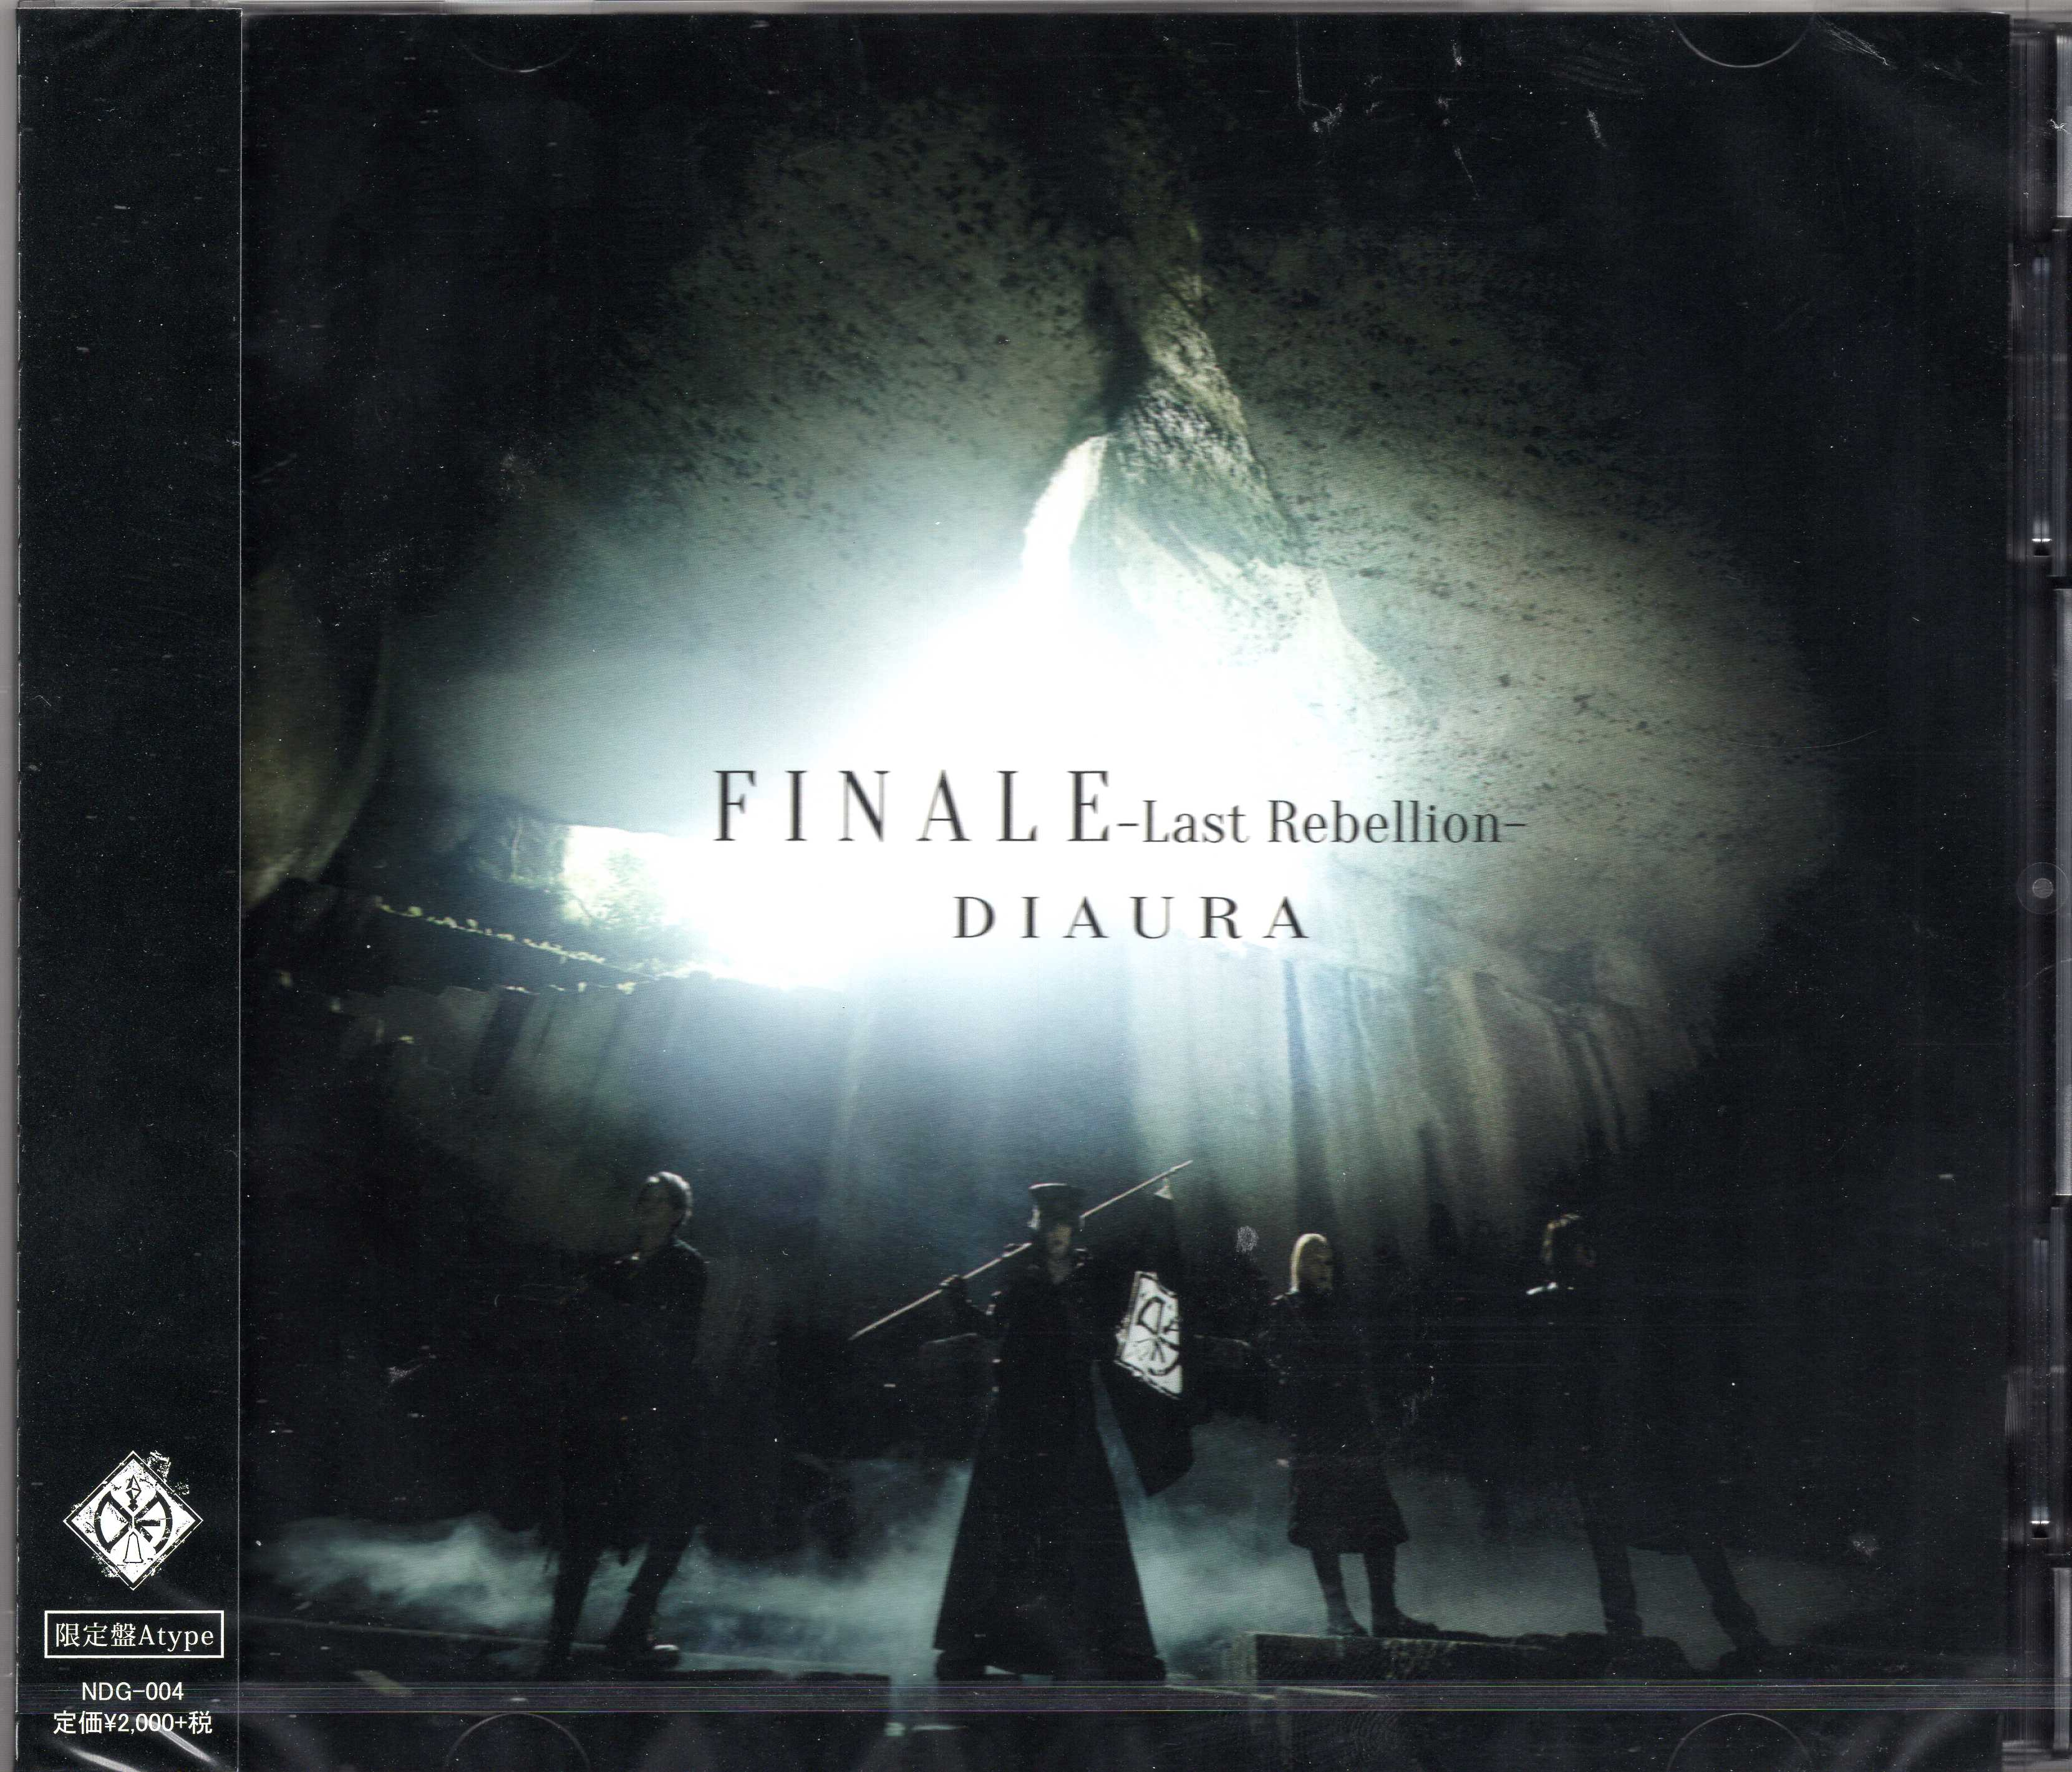 ディオーラ の CD 【A Type】FINALE-Last Rebellion-